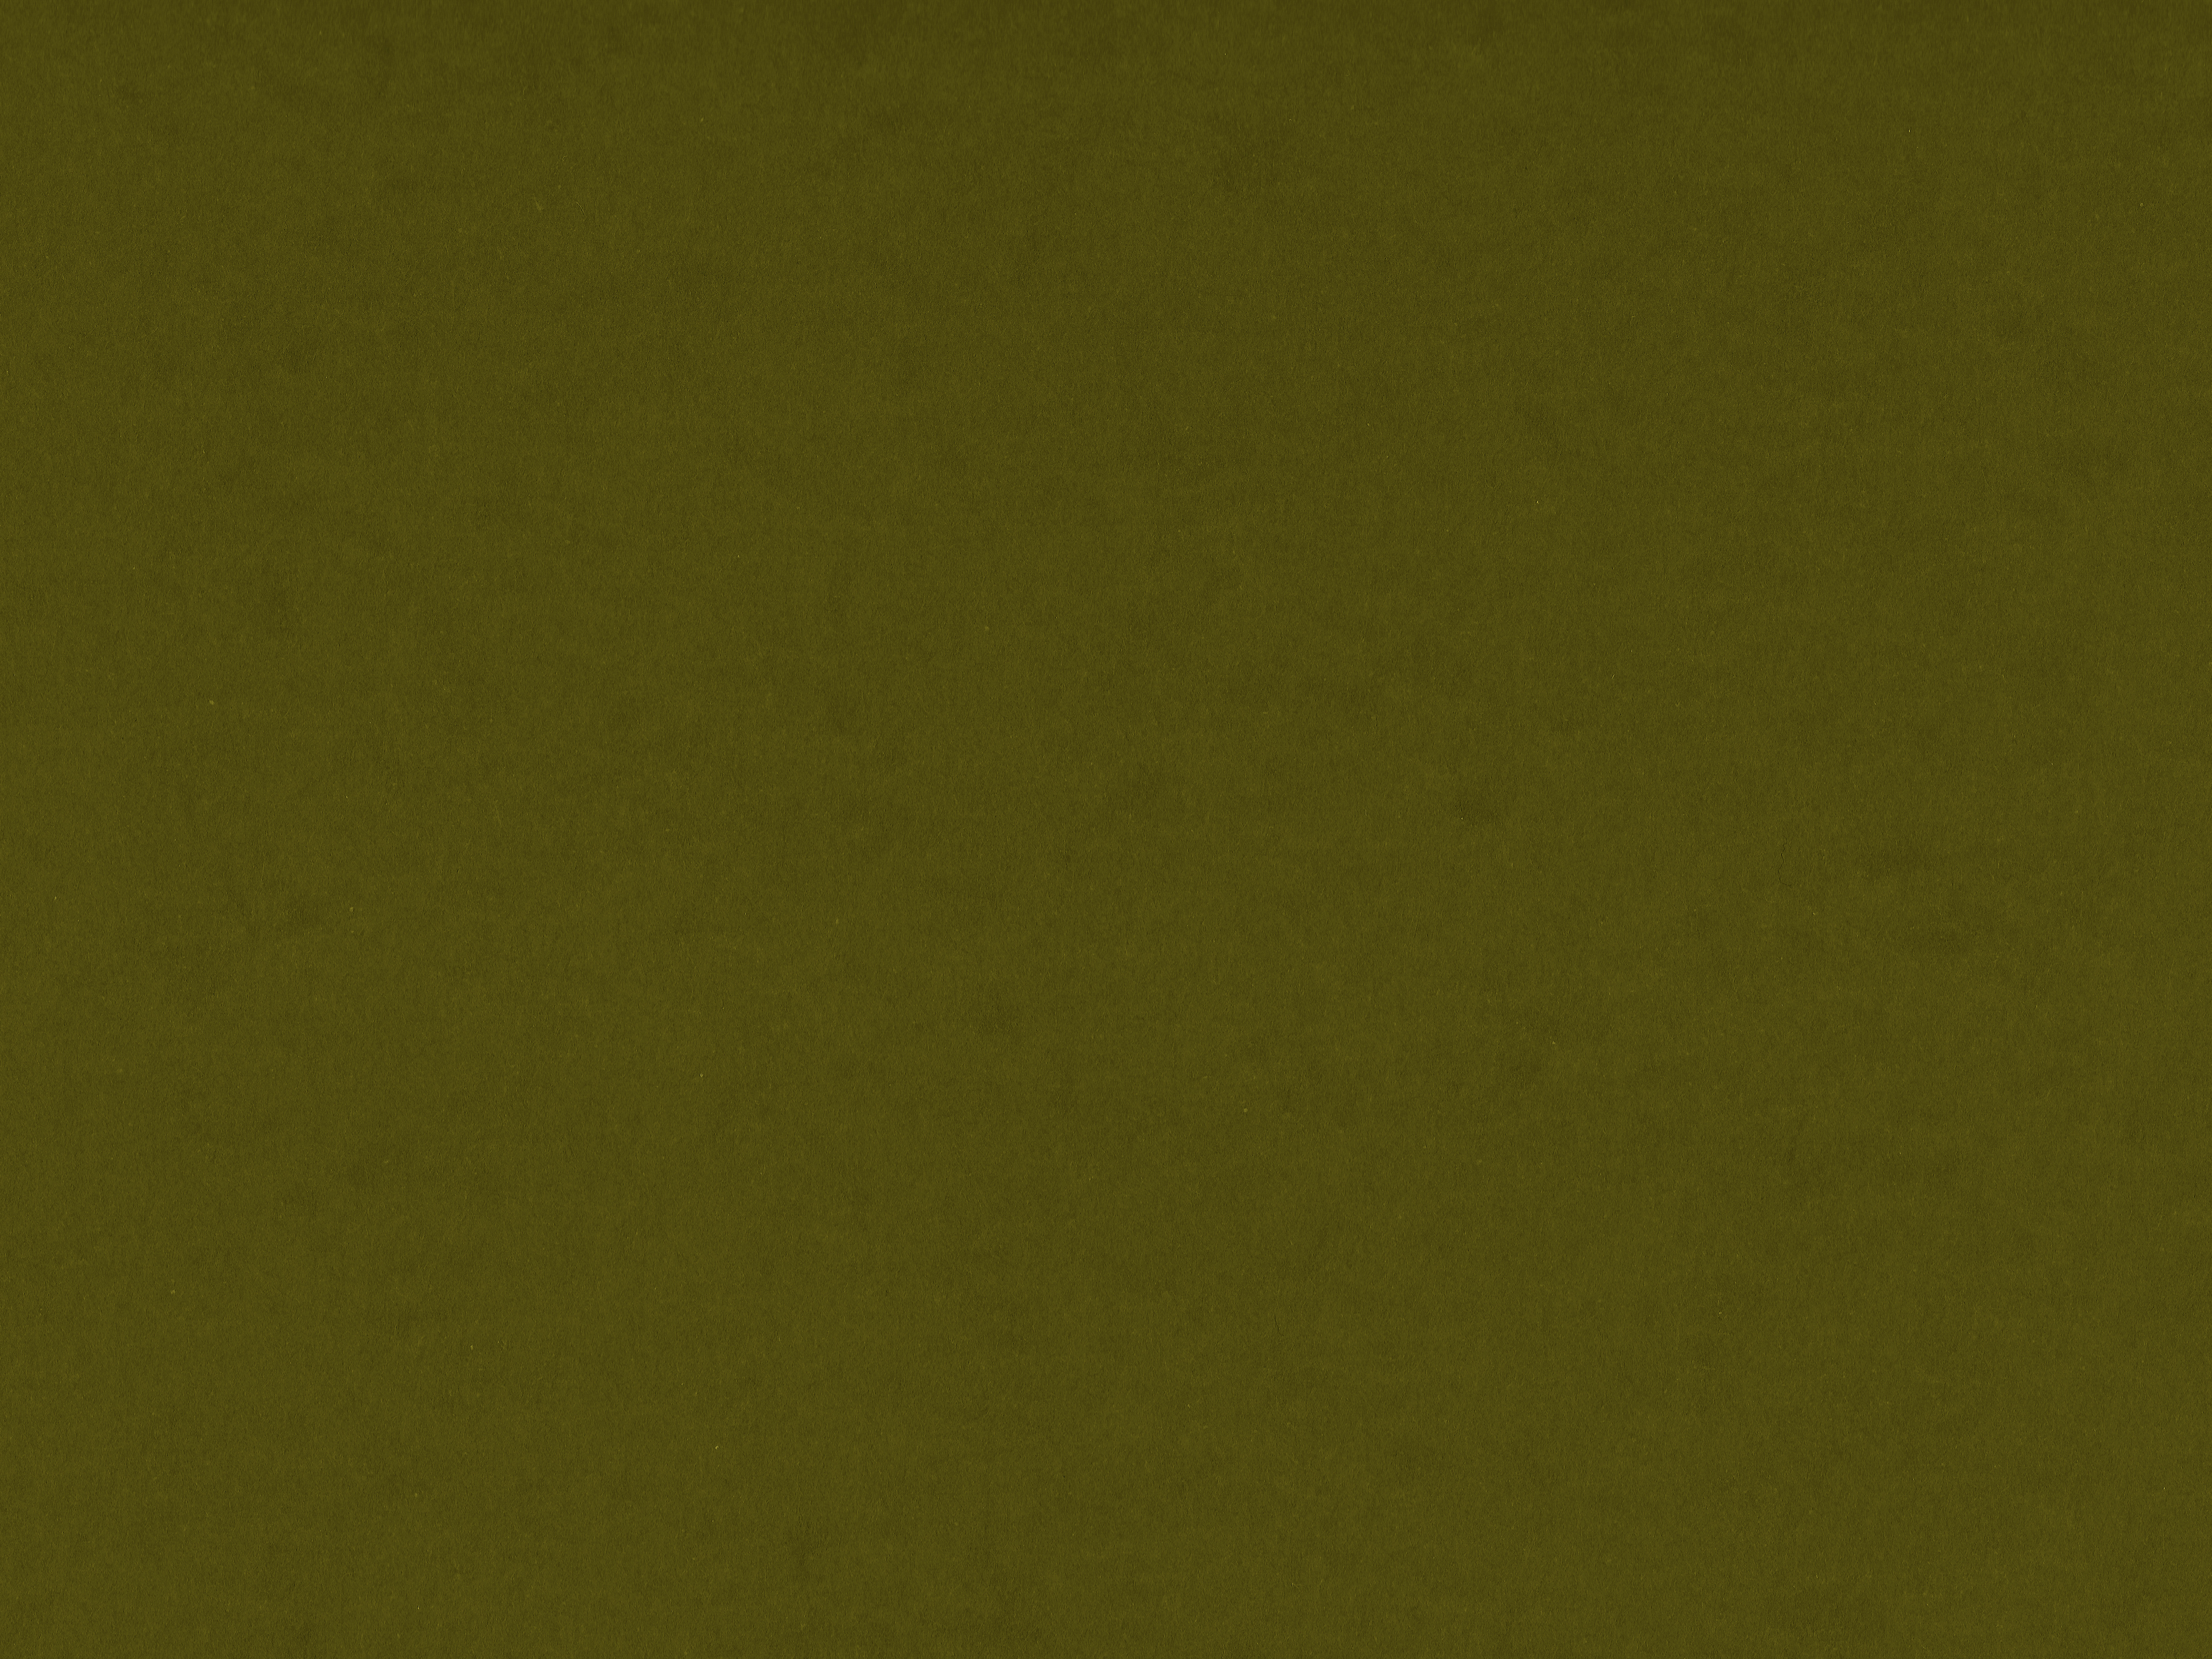 Olive Green Card Stock Paper Texture Picture Free